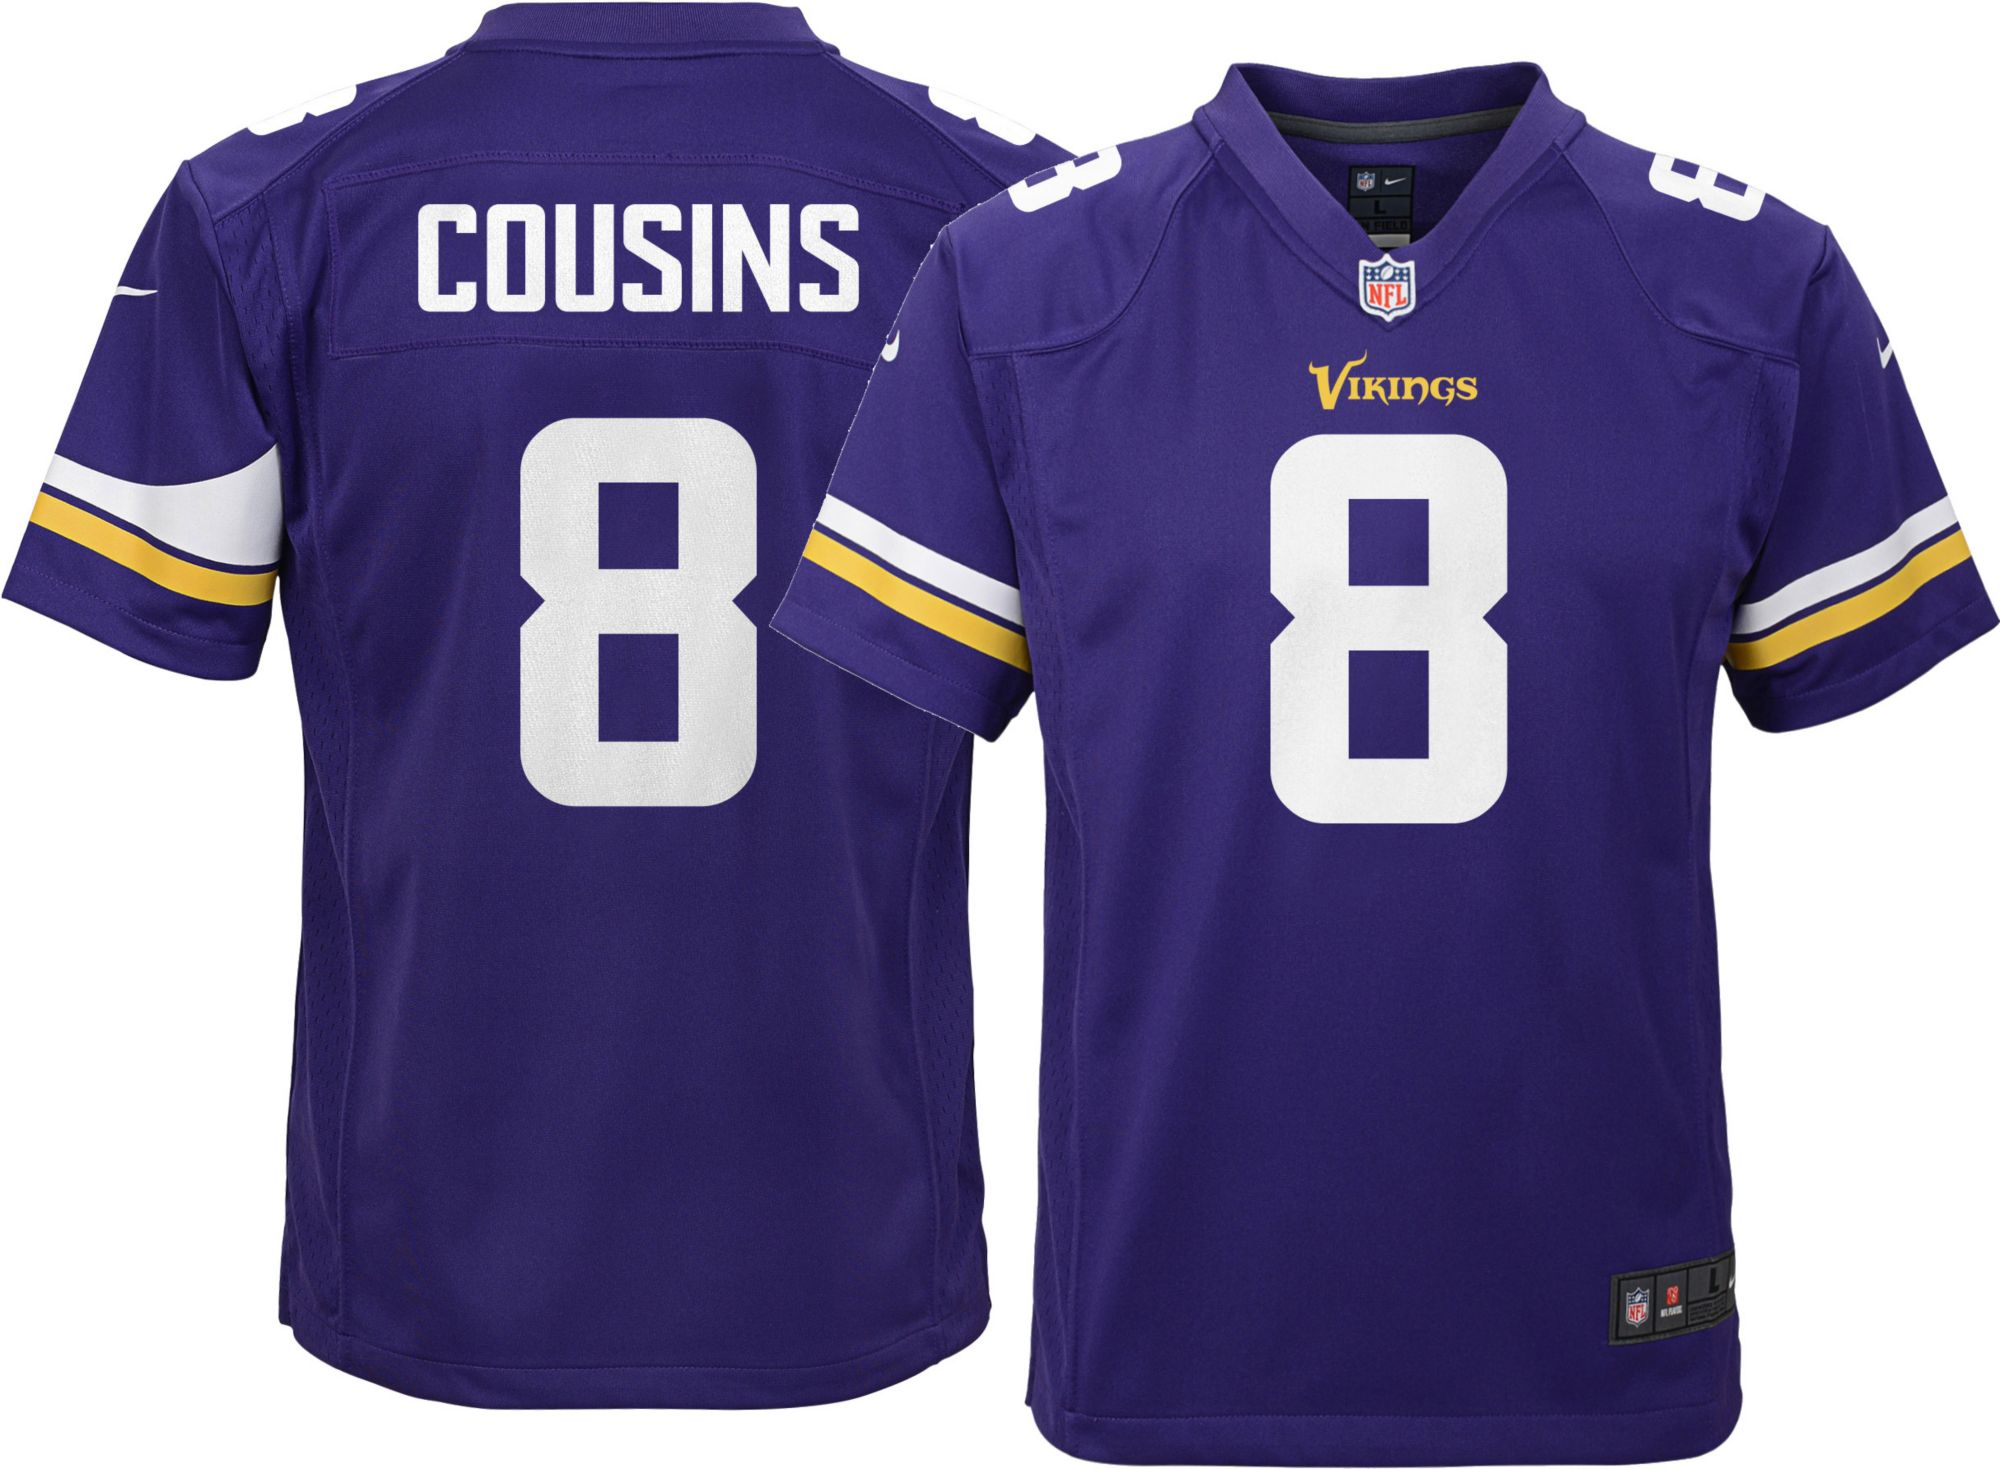 sports shoes a2208 25aa6 cousins jersey